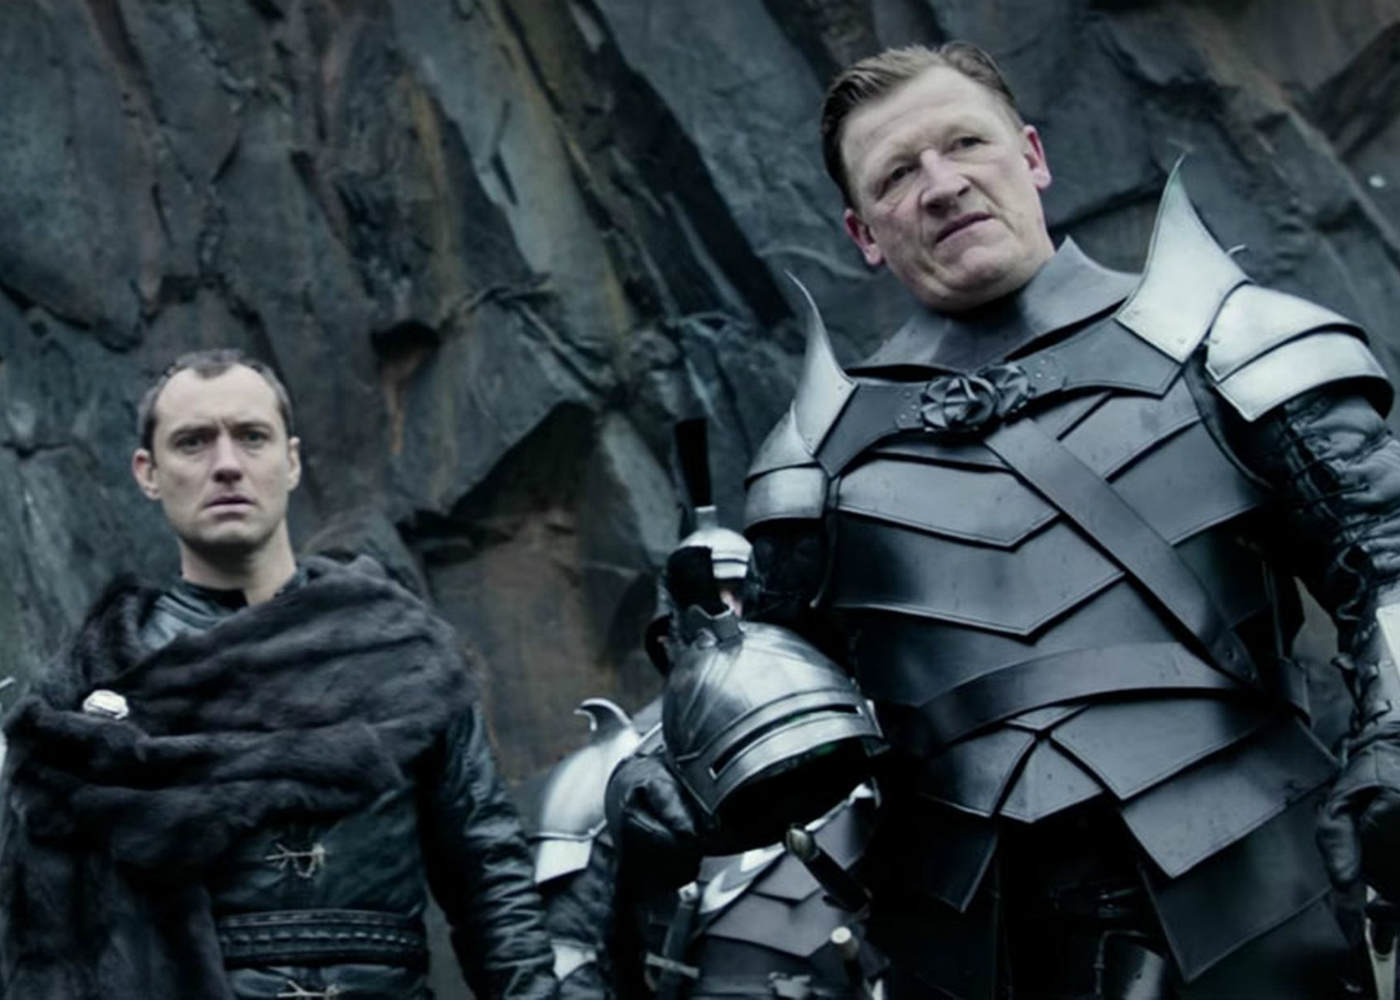 King Arthur: Legend of the Sword Fights Losing Box Office Battle